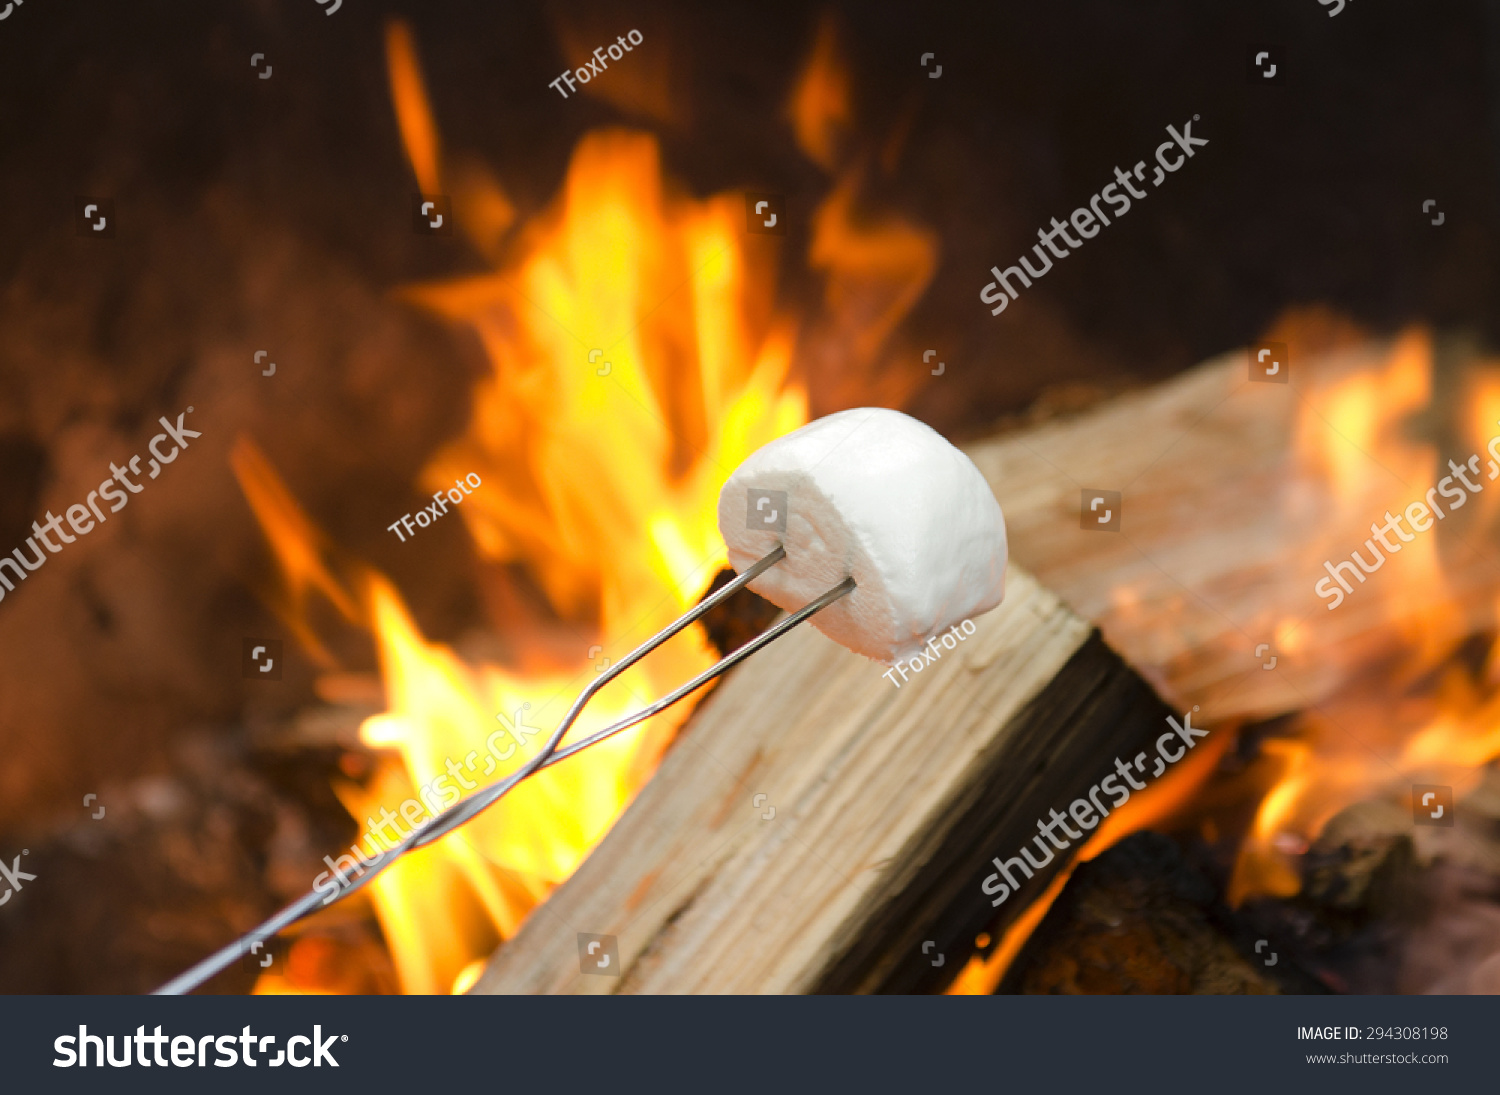 Roasting Marshmallows Over Open Campfire Smores Stock Photo Royalty Free 294308198